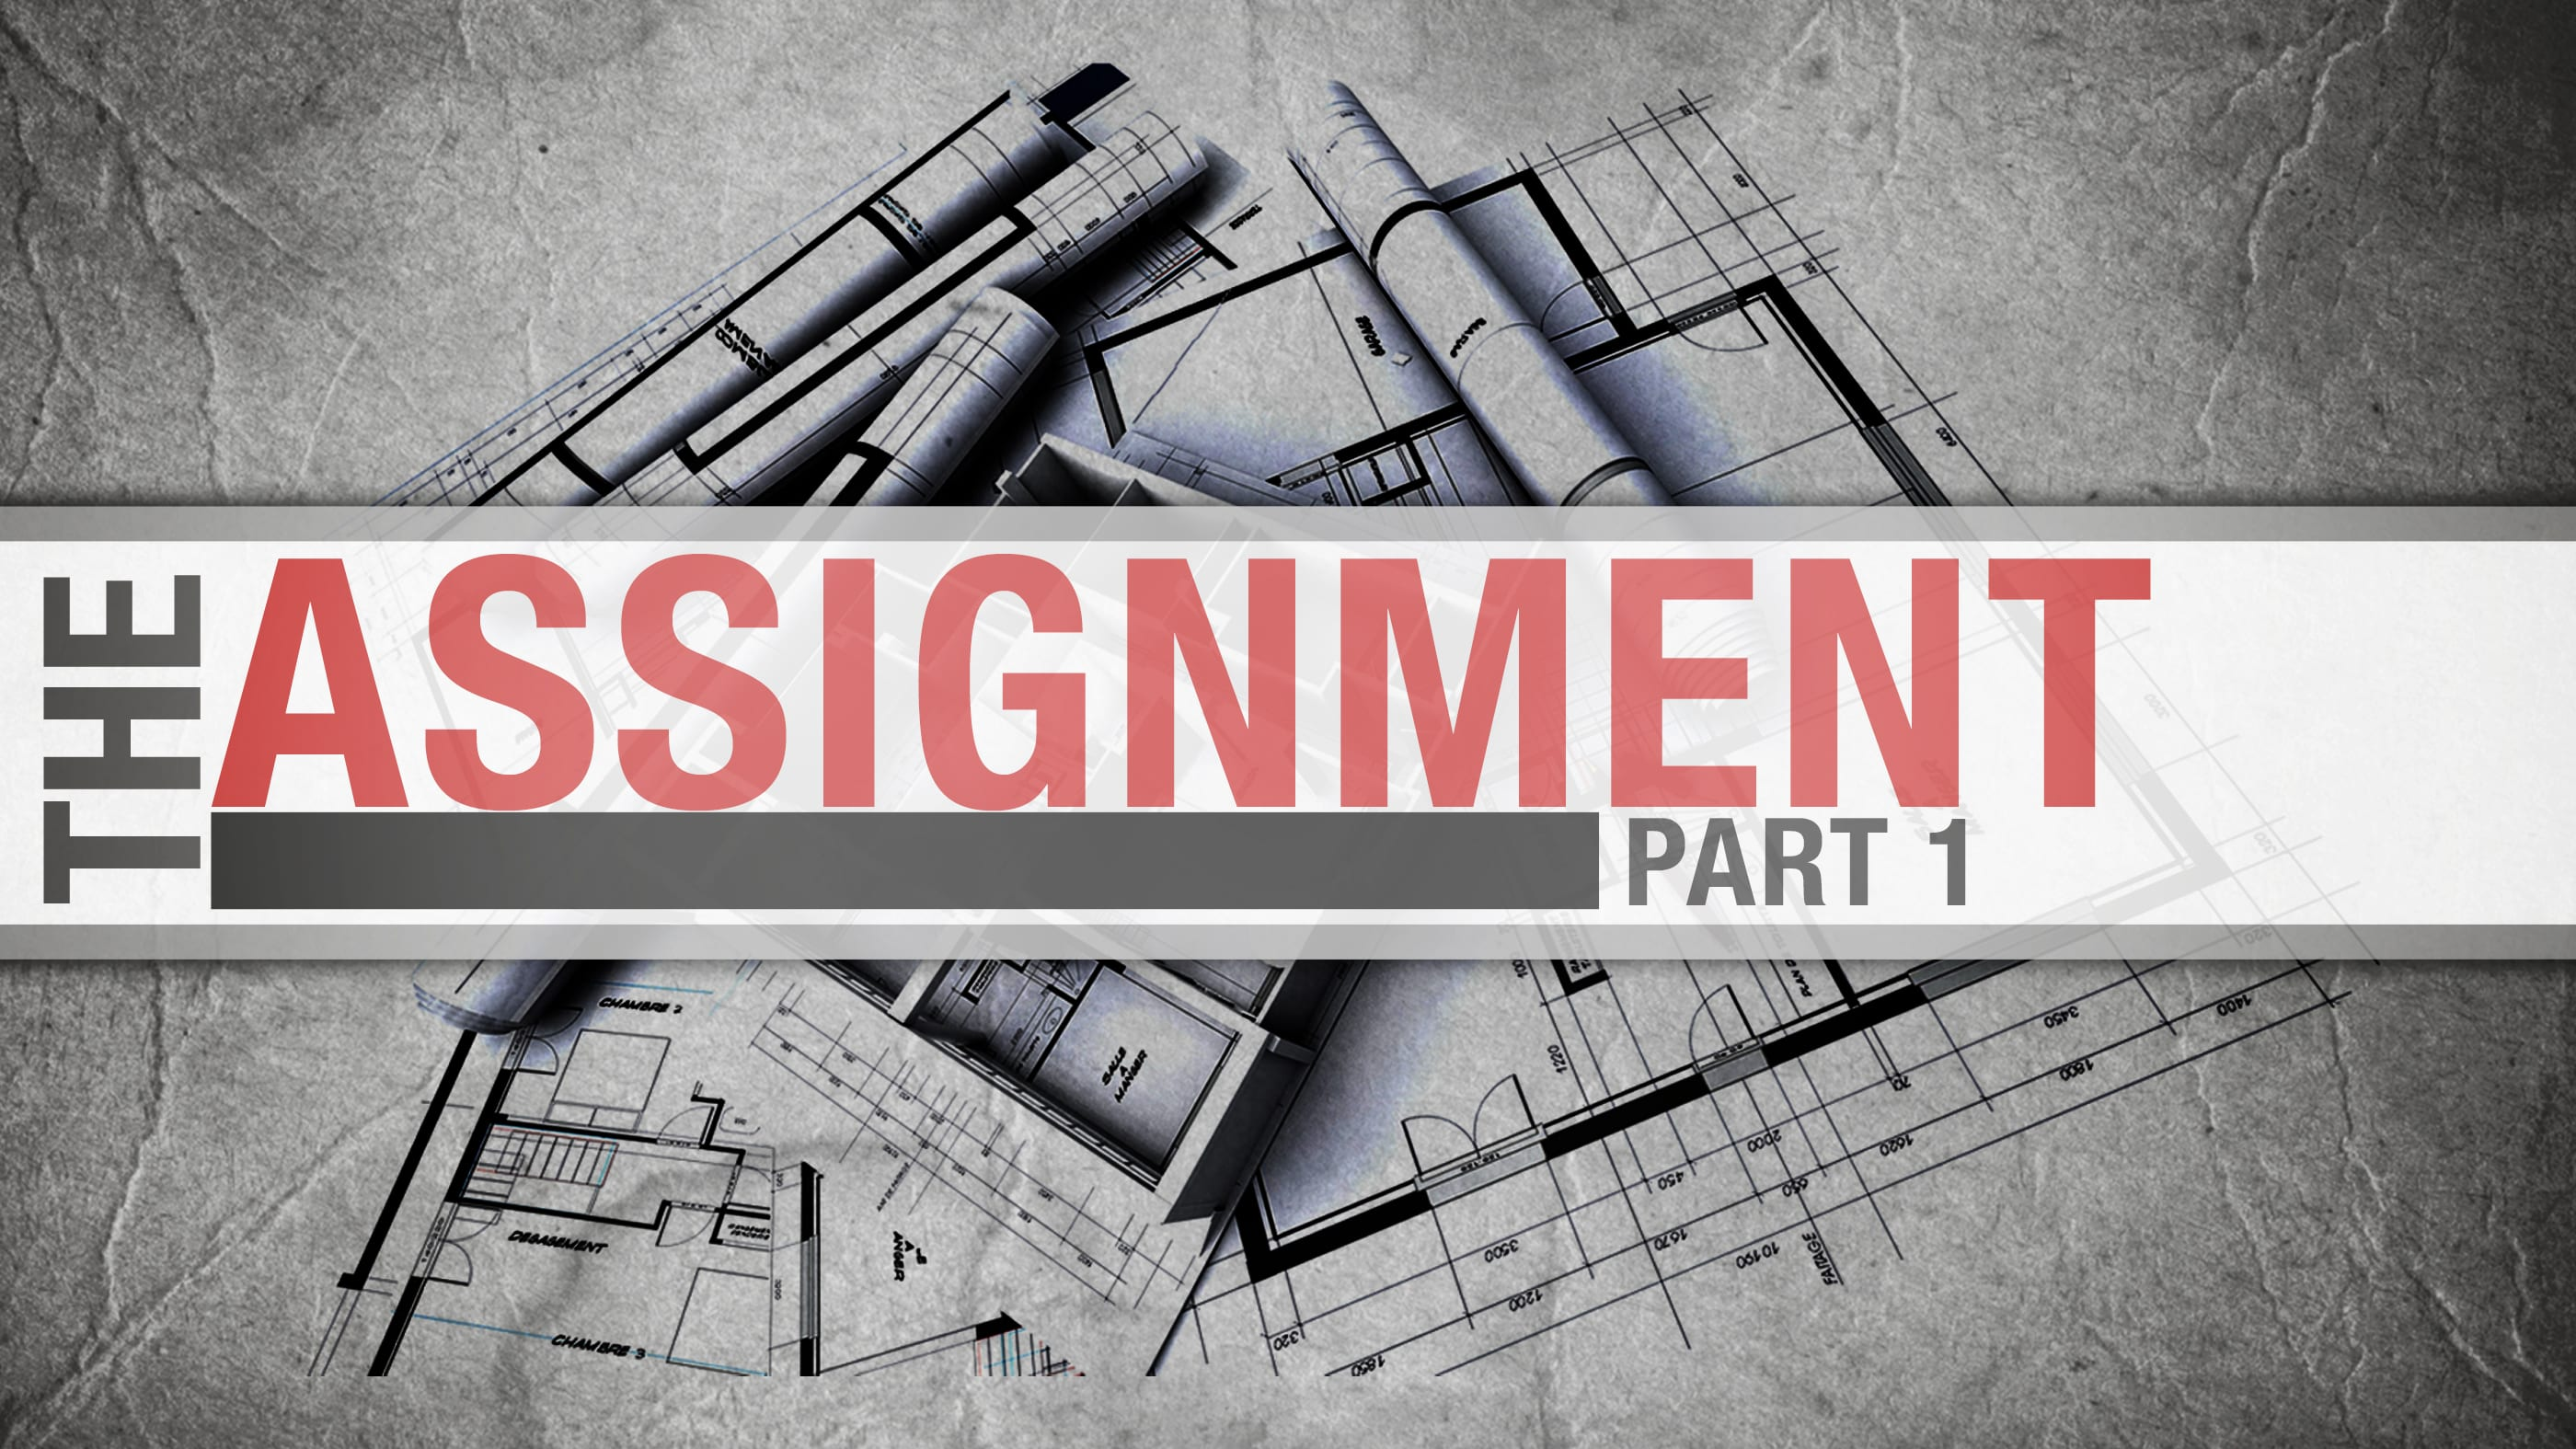 The Assignment, Part 1